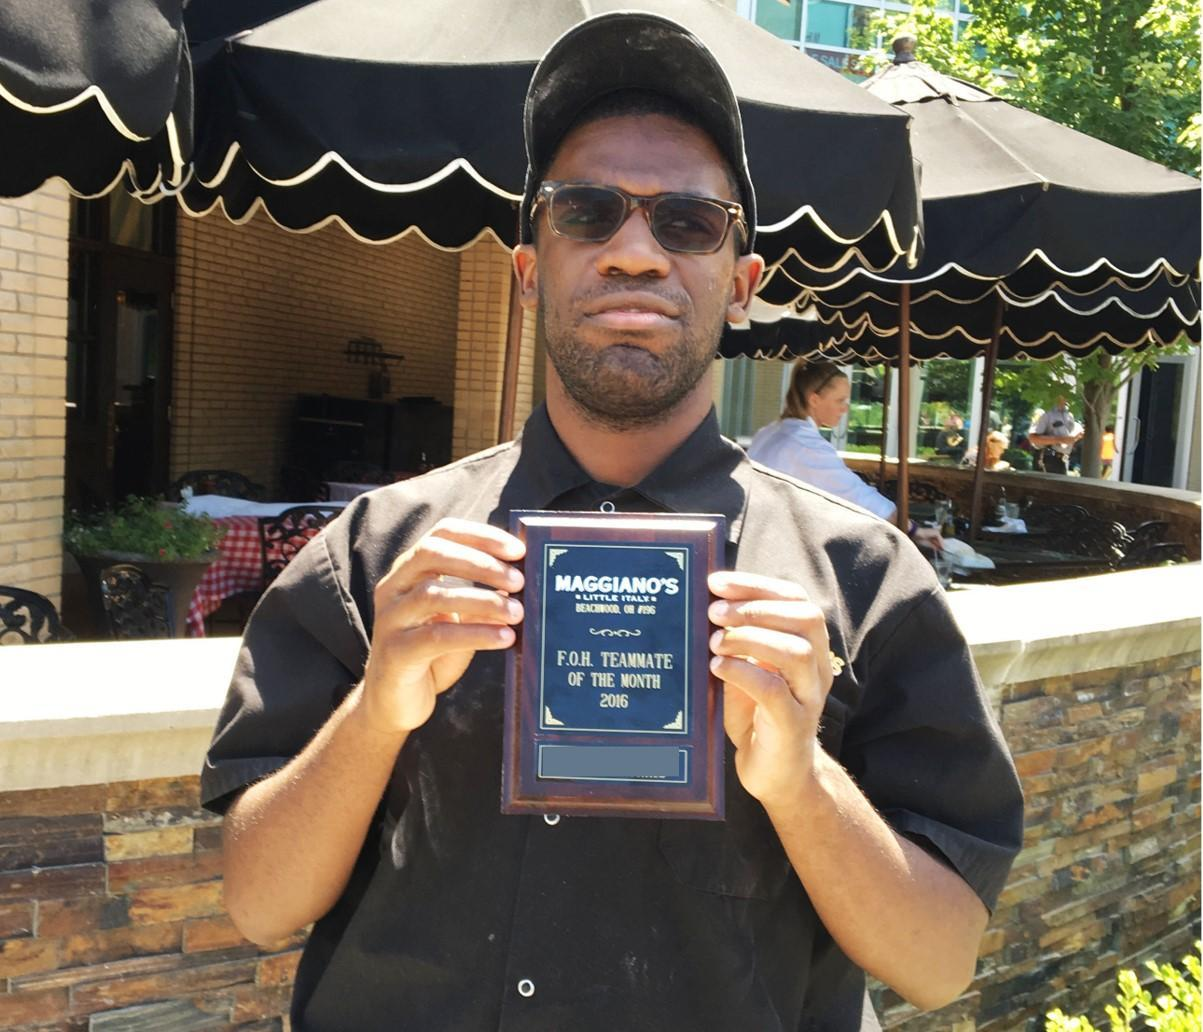 William is employee of the month at Maggiano's Little Italy